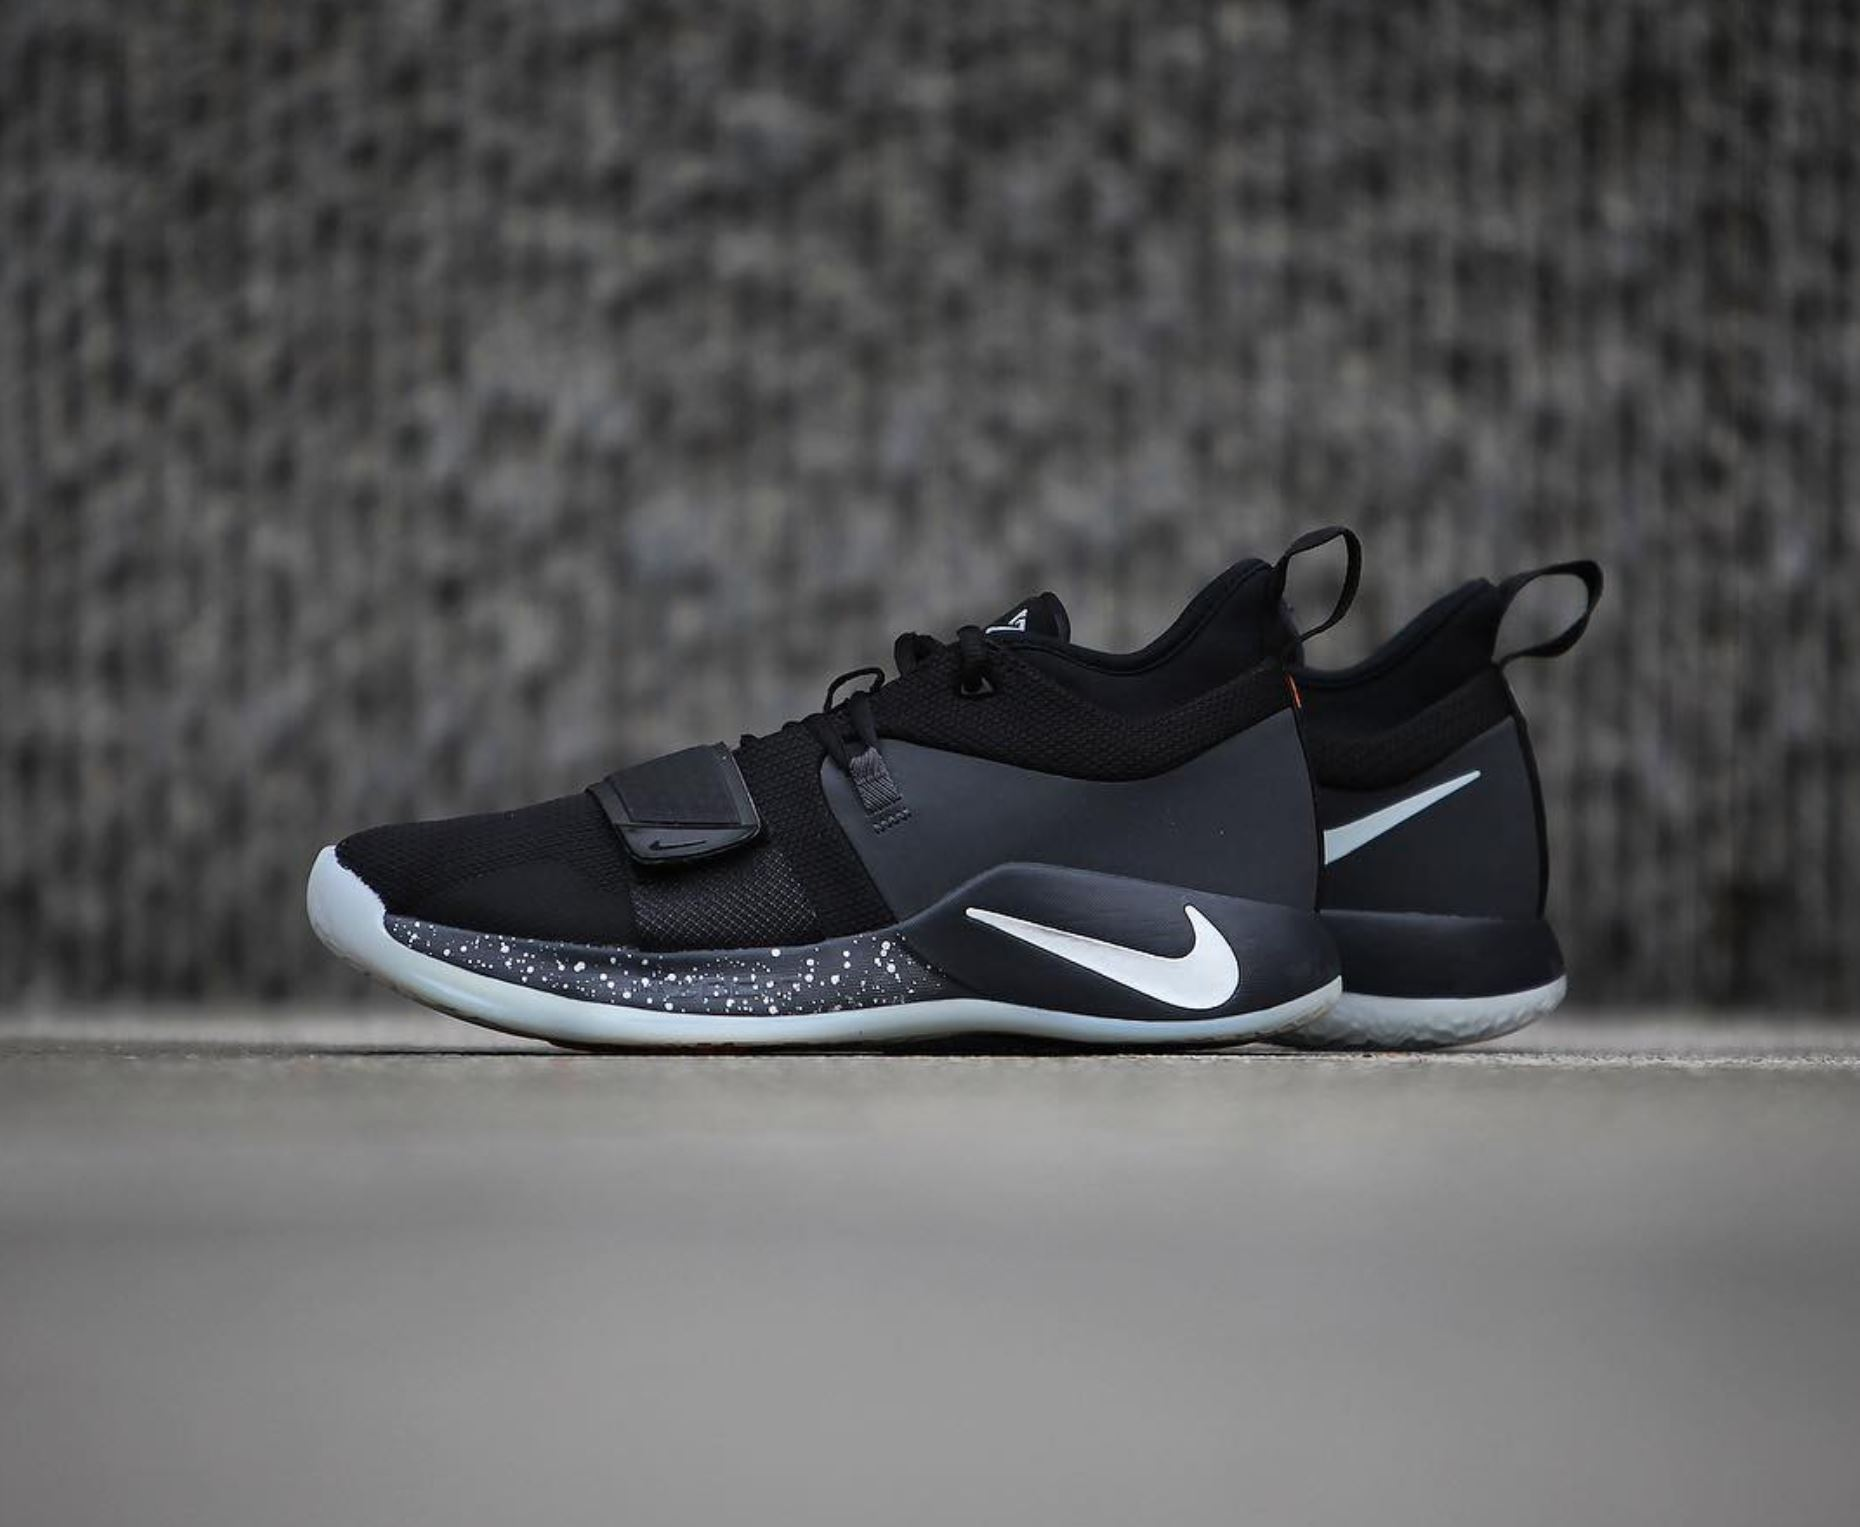 newest 6c47e f761a Detailed Look at the Nike PG 2.5, Paul George's Latest Shoe ...